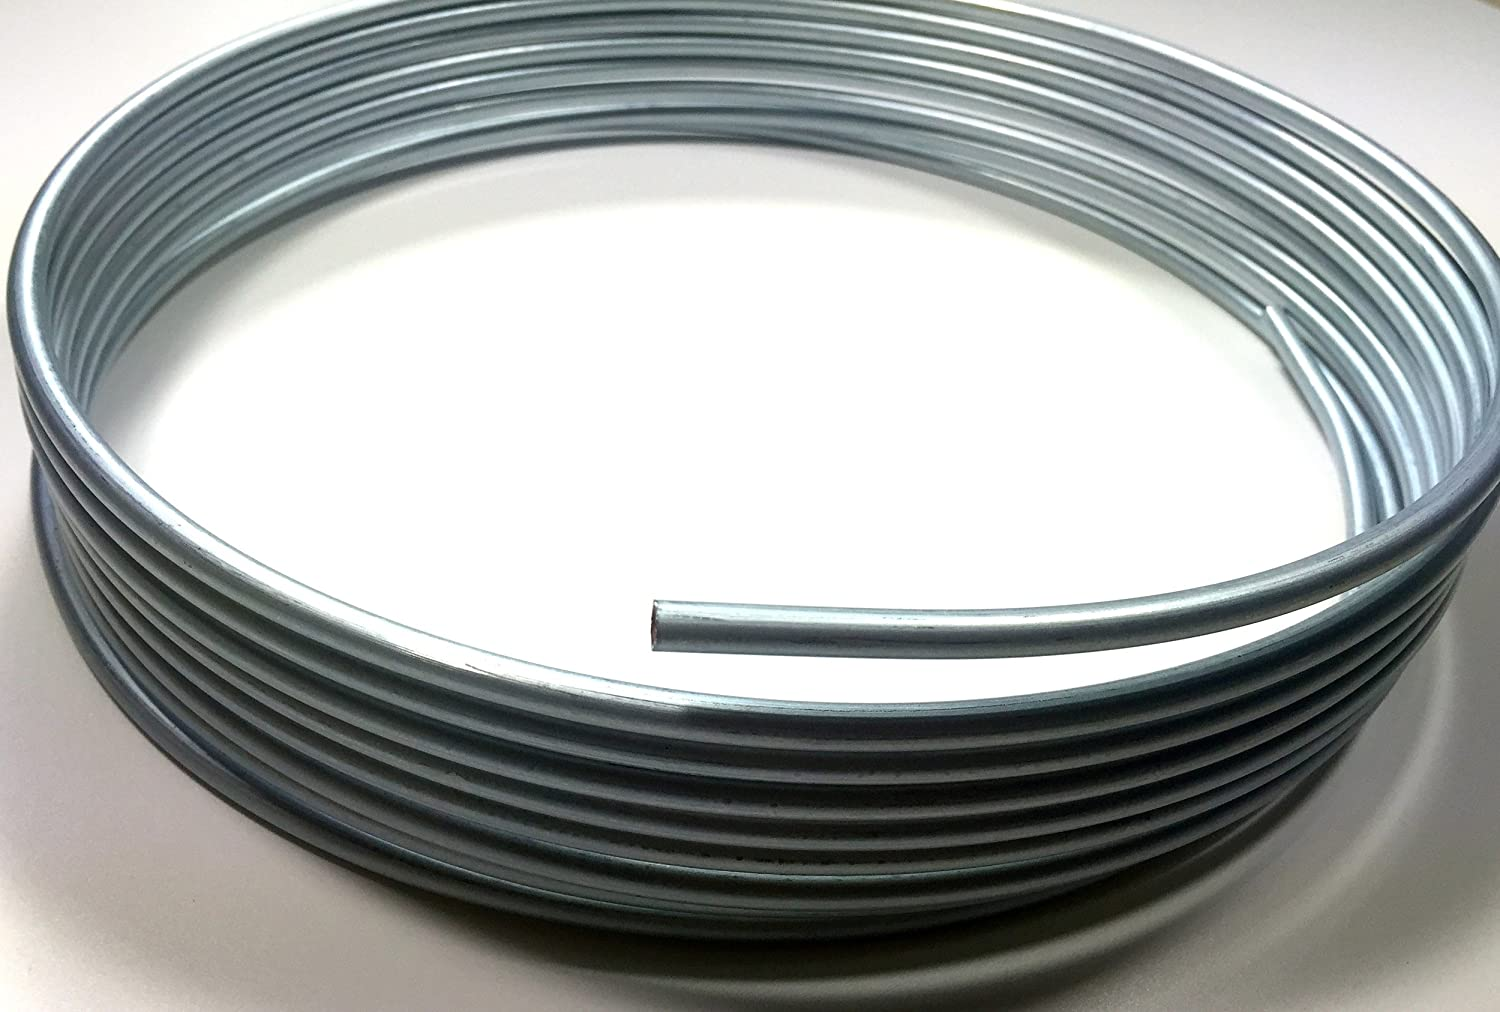 25 ft. Roll of Zinc Plated 5/16' Tubing - Fuel or Transmission The Stop Shop